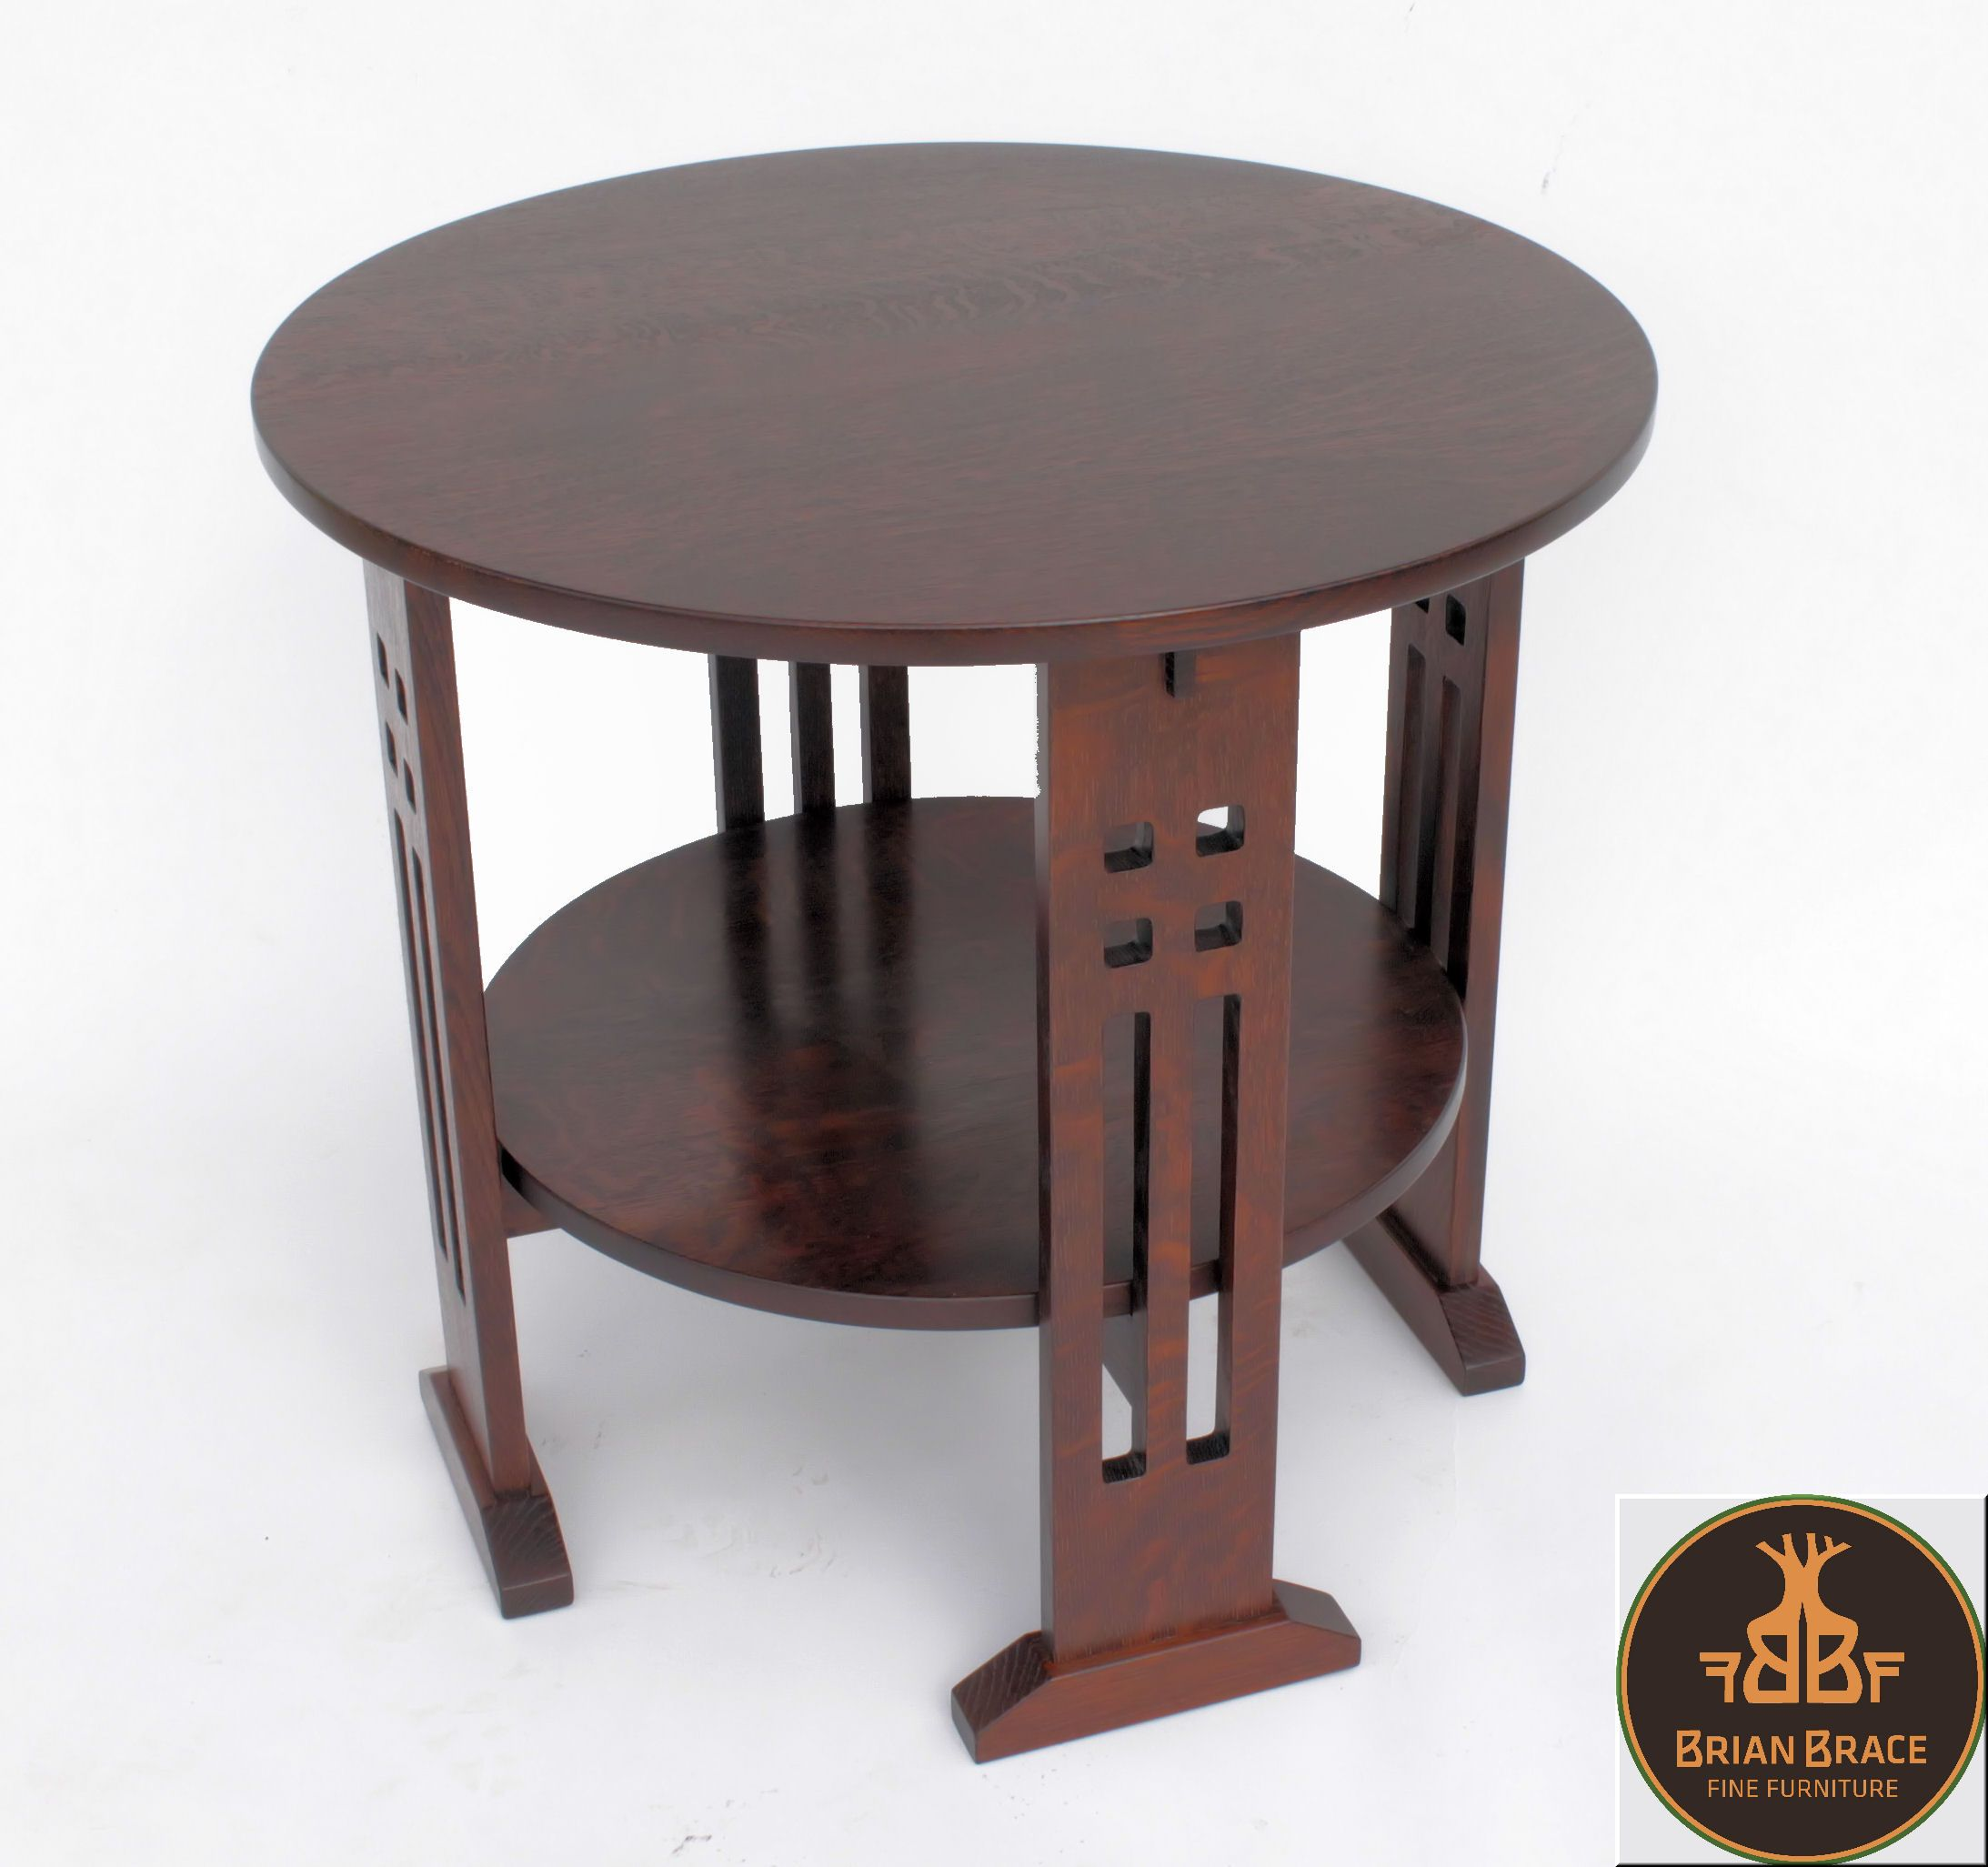 Limbert Arts and Crafts Round Table A&C Limbert